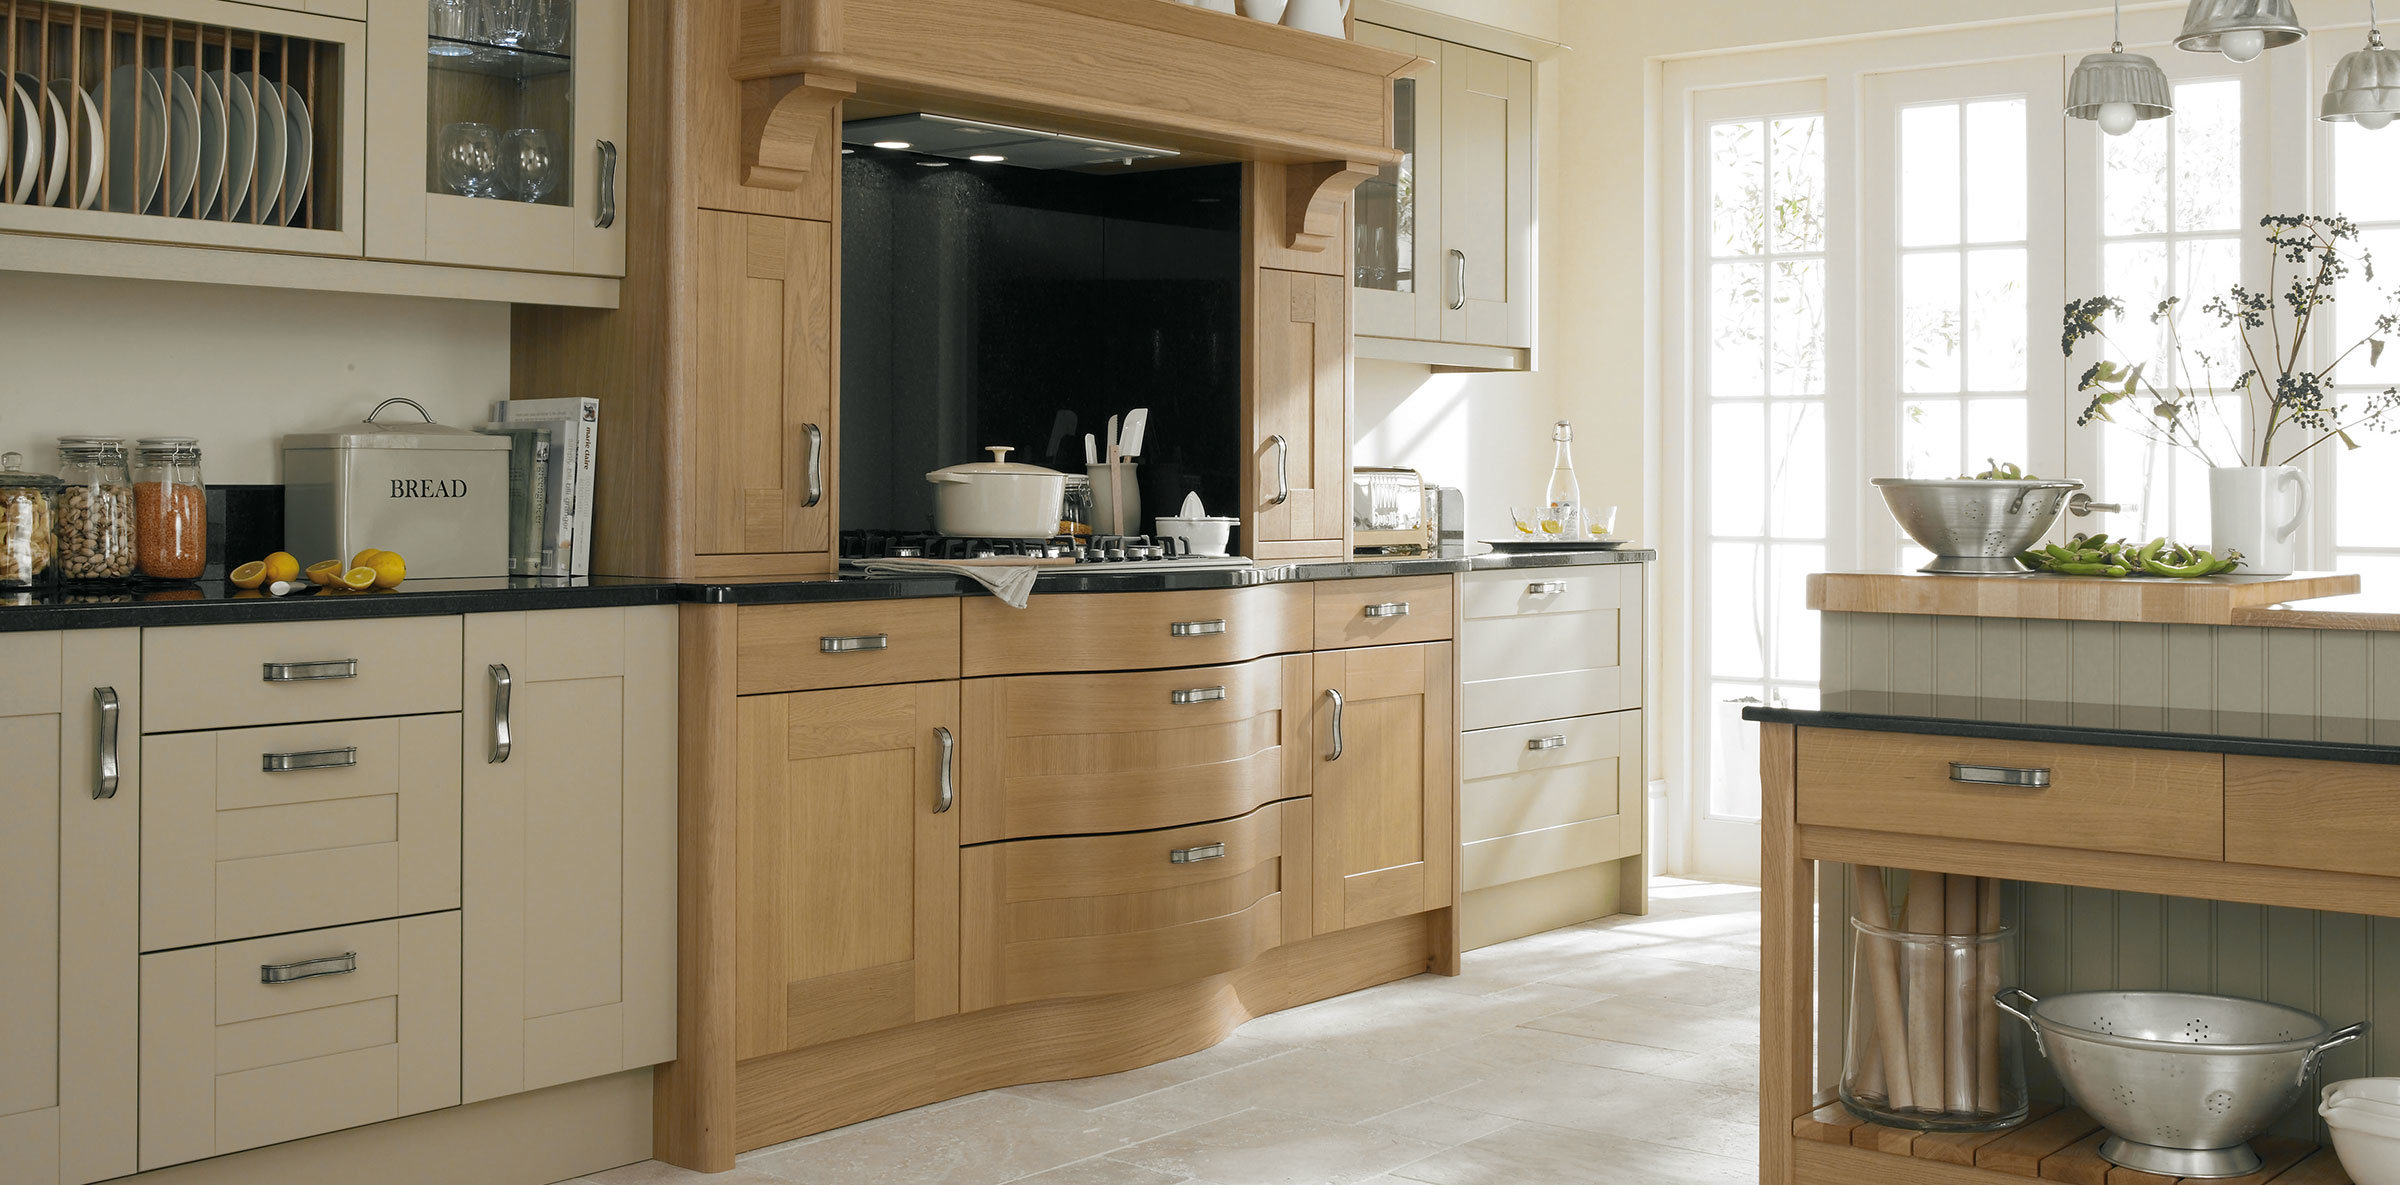 broadoak_linen-kitchen-newcastle